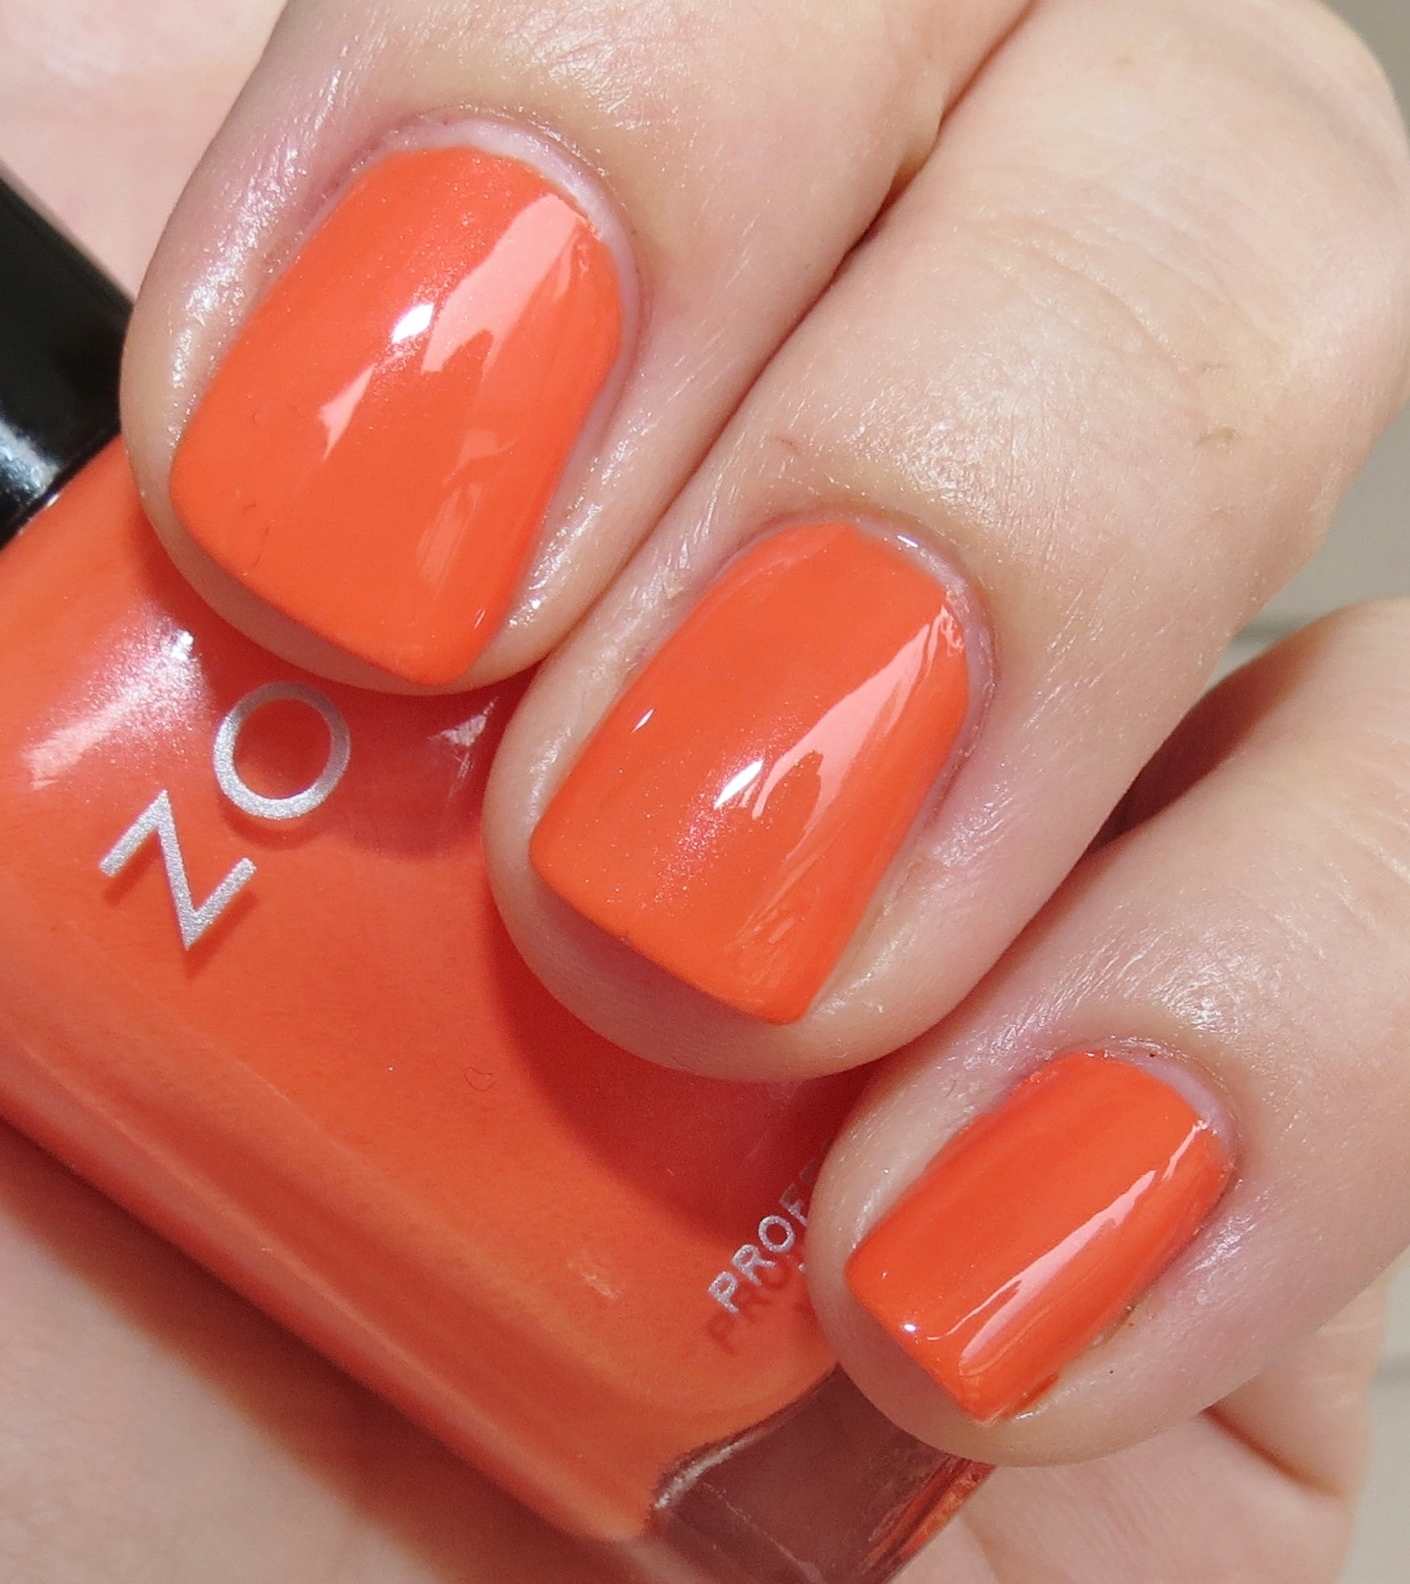 Zoya Stunning Nail Polish Collection Swatches & Review - Blushing Noir